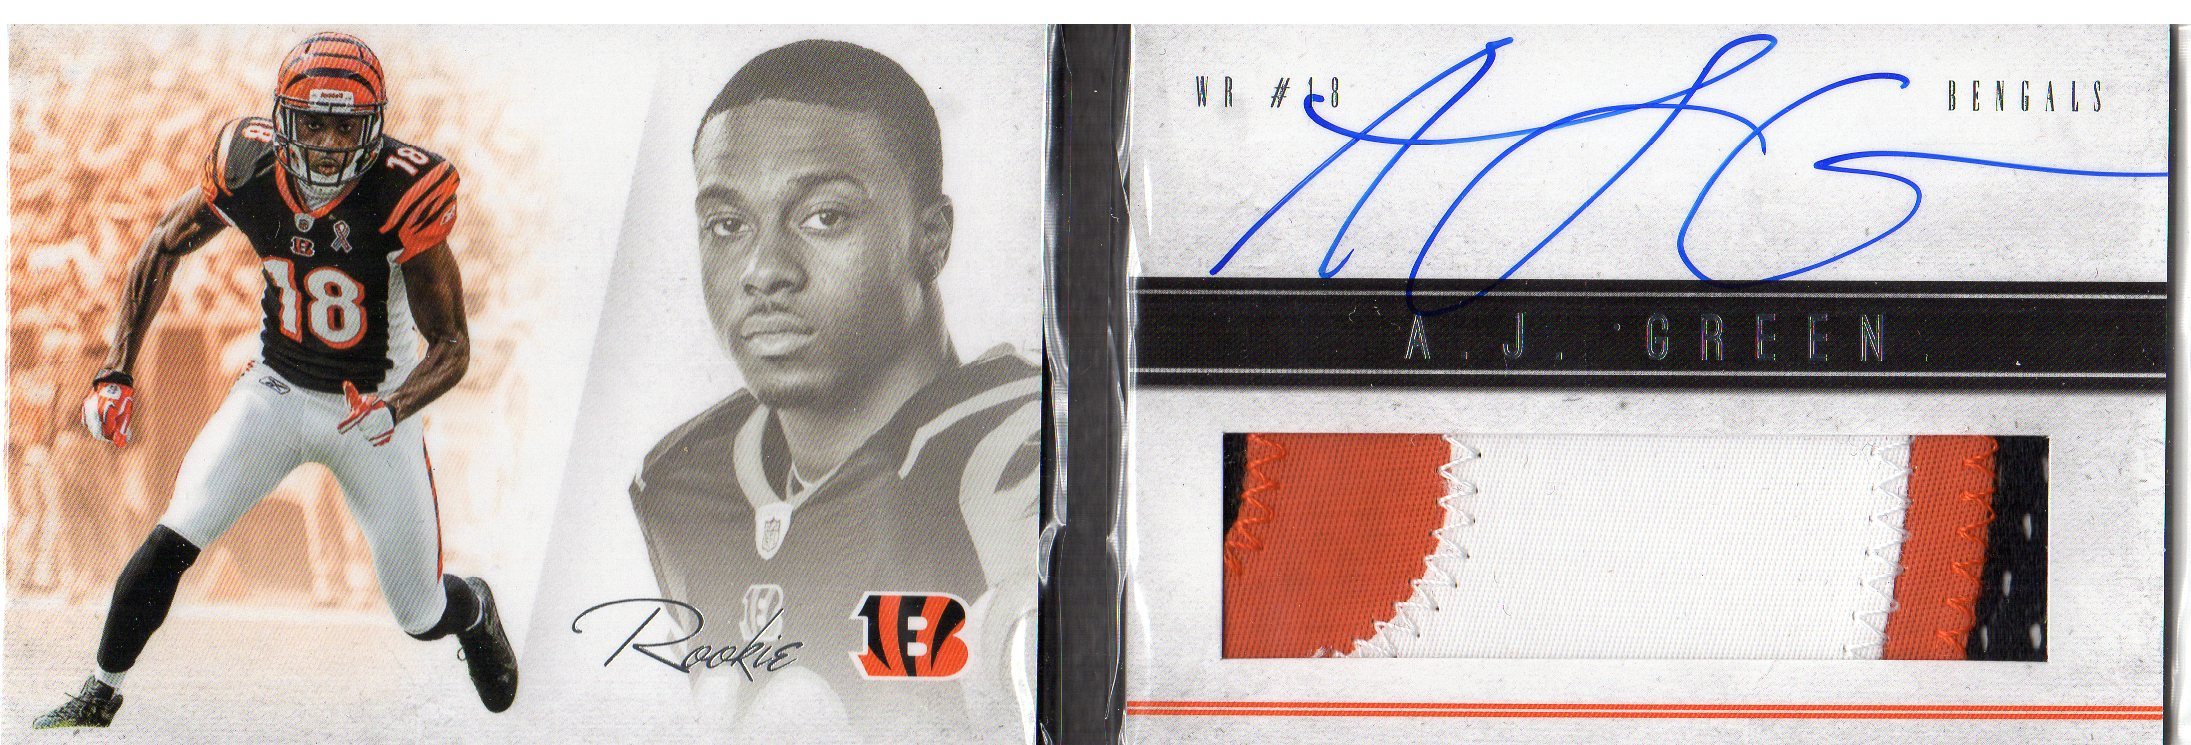 2011 Panini Playbook #101 A.J. Green JSY AU/299 RC